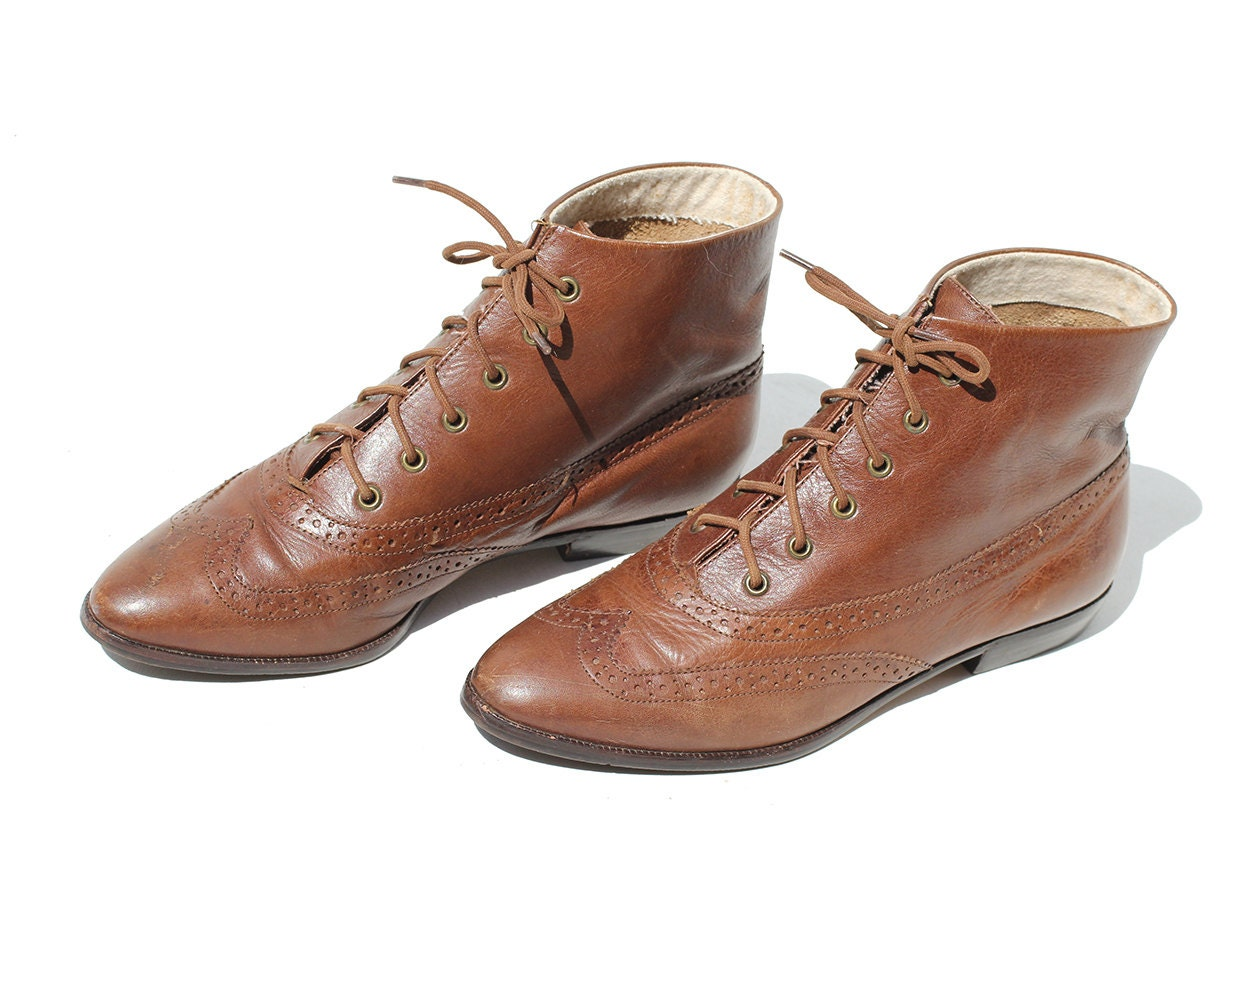 vintage brown leather ankle boots punched leather boots